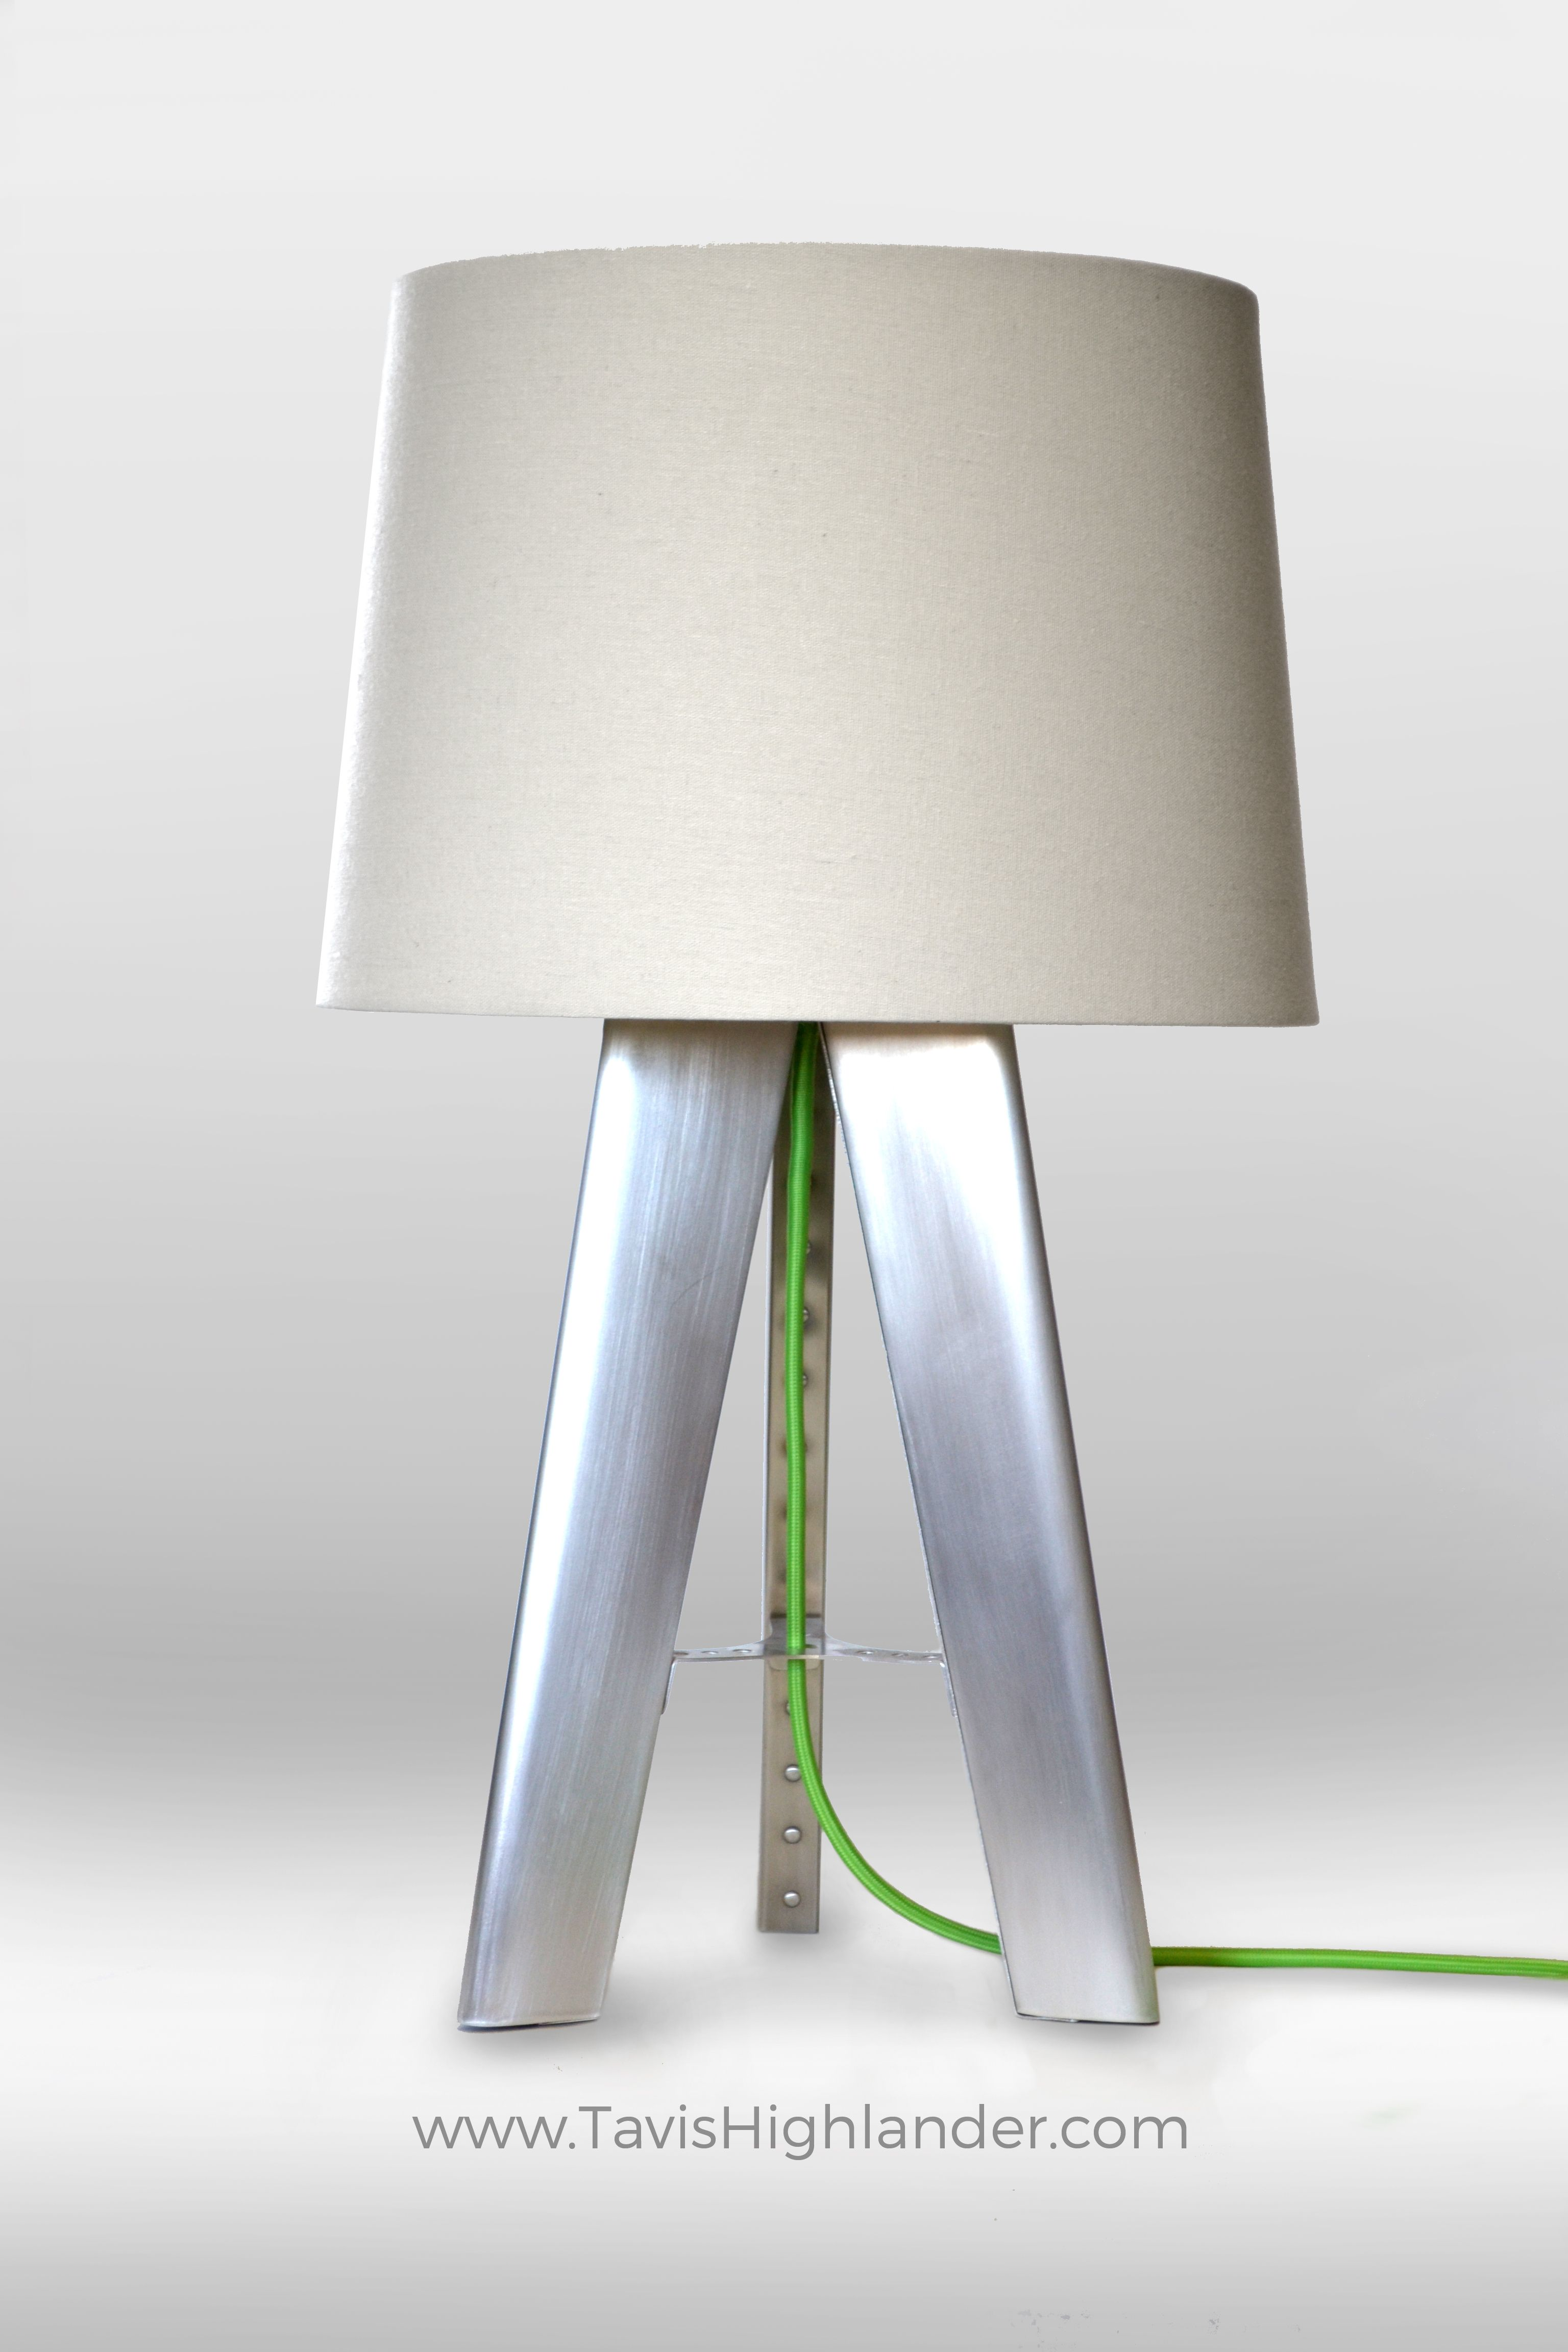 Aluminum Sheet Metal Riveted Rivets Bead Rolled Punch Flared Industrial Style Aviation Aerospace Inspired Lamp Industrial St Tripod Lamp Table Lamp Lamp